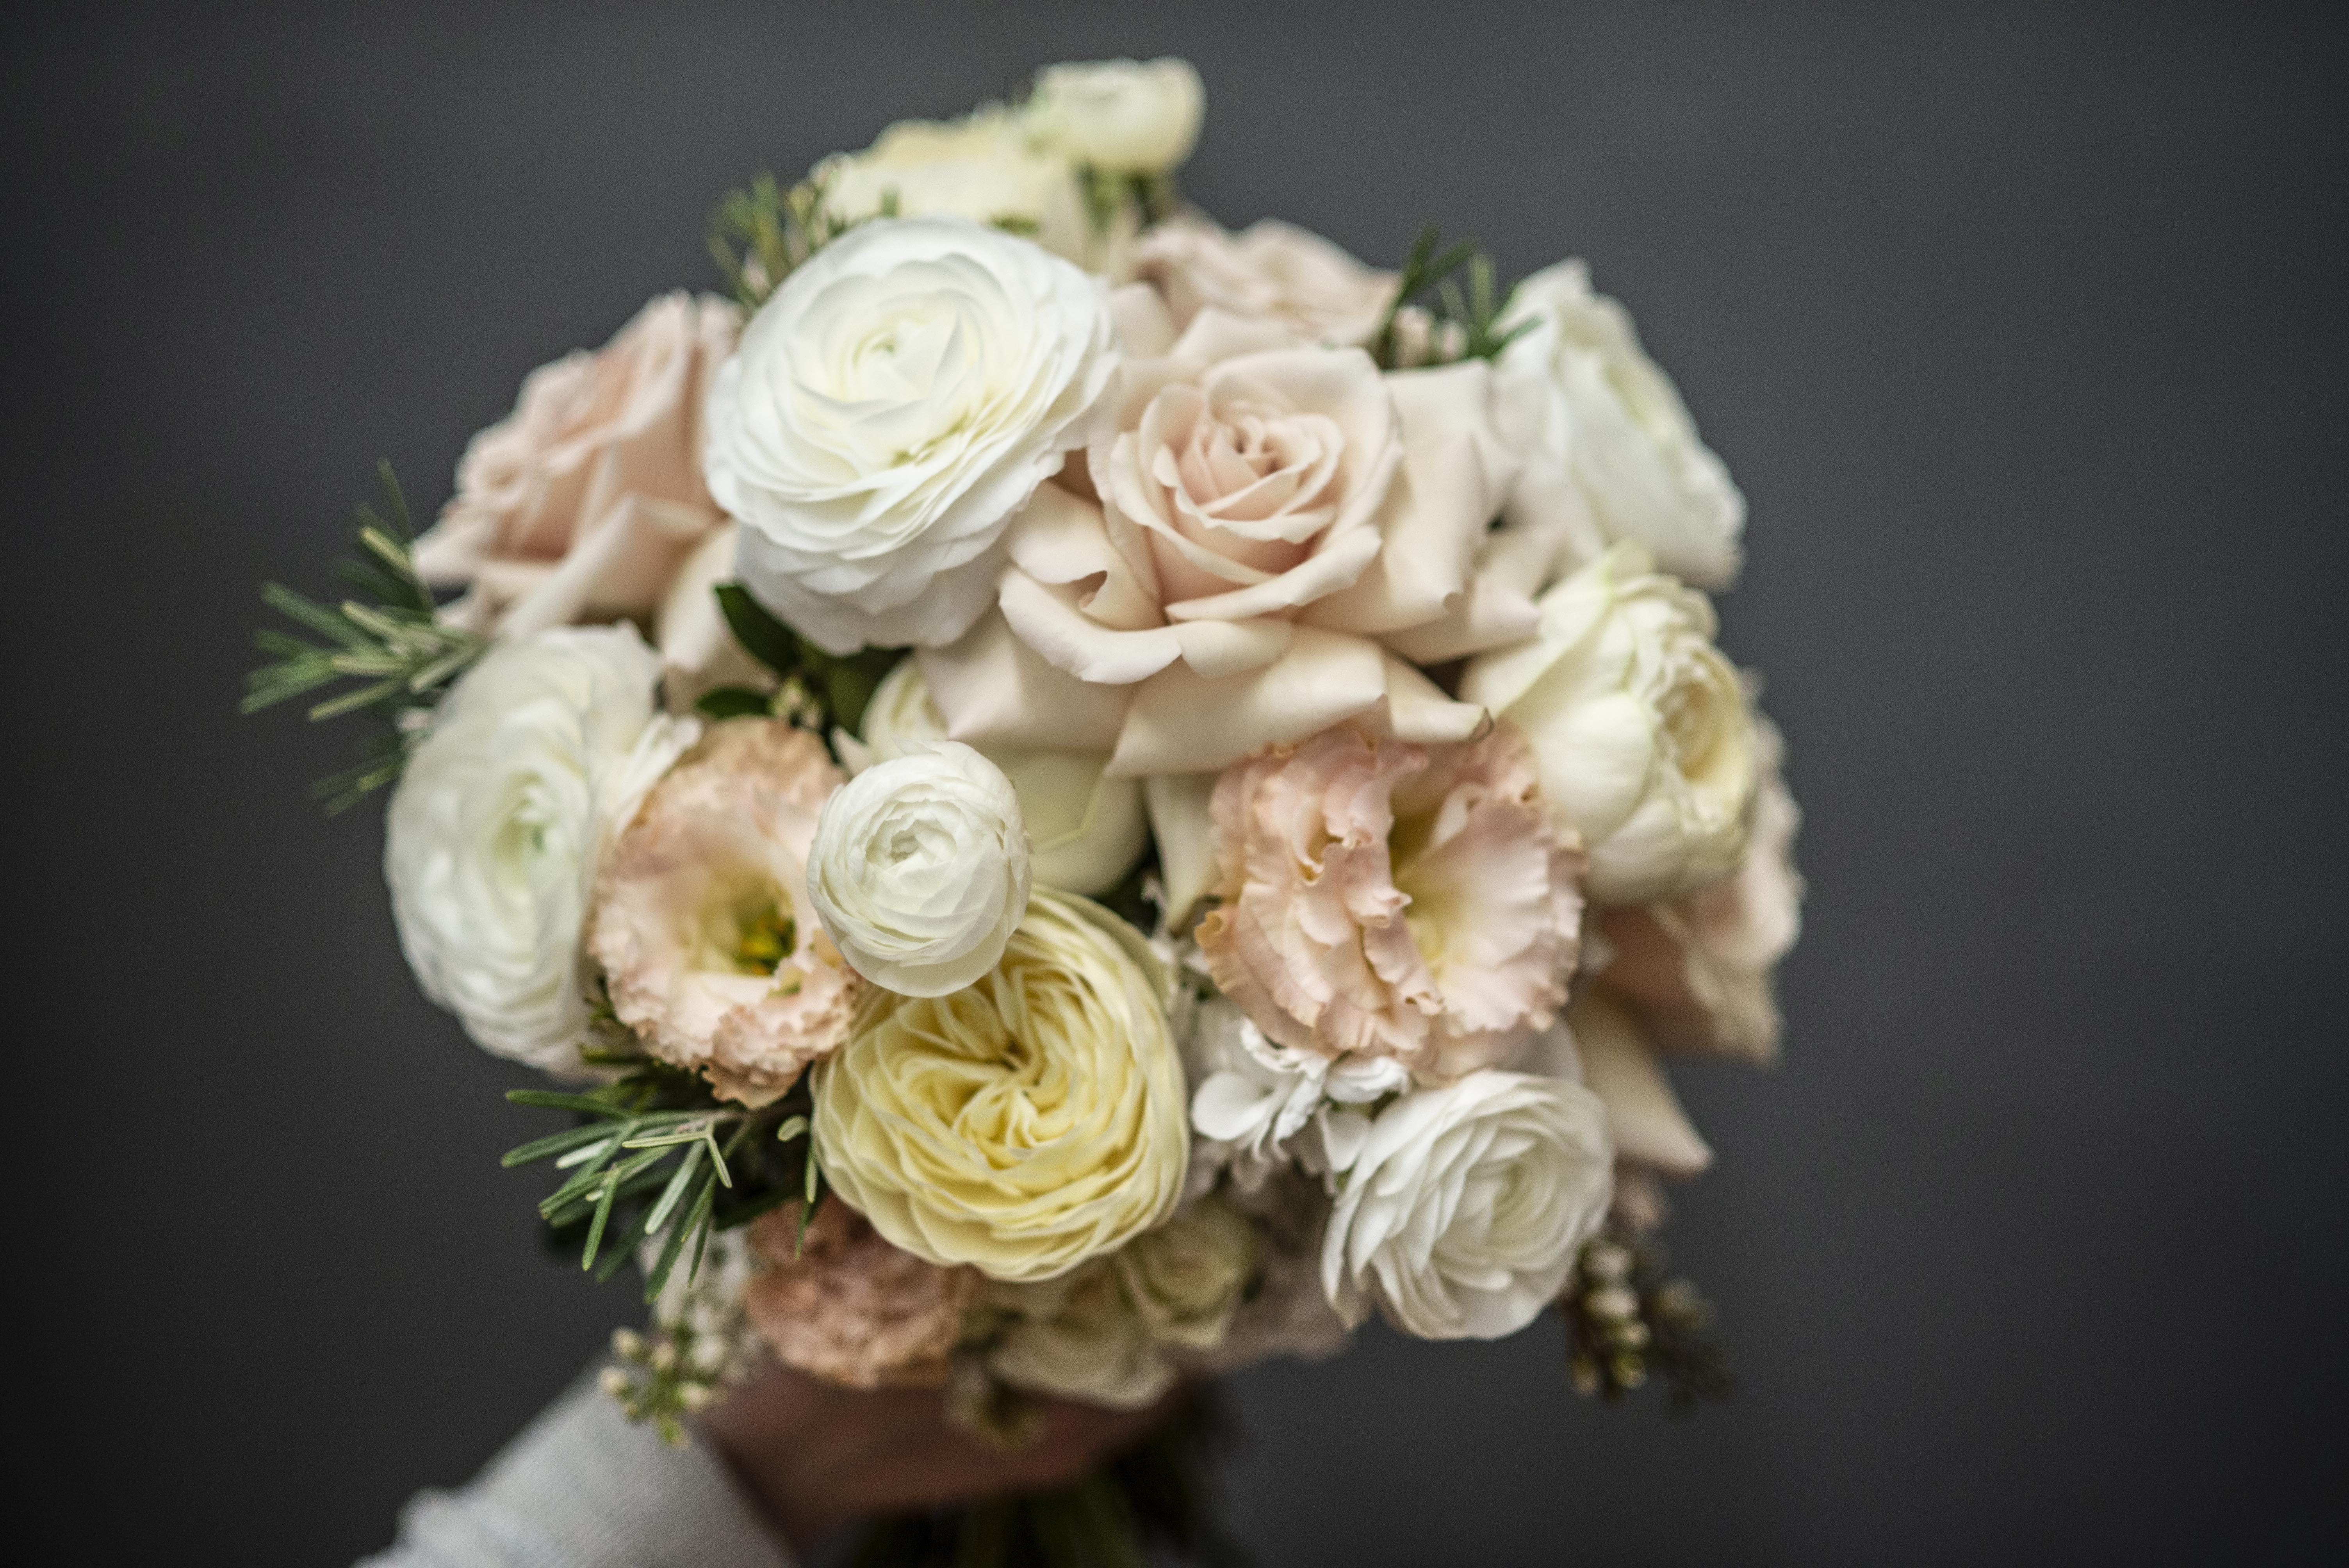 Blush pink and cream bouquet